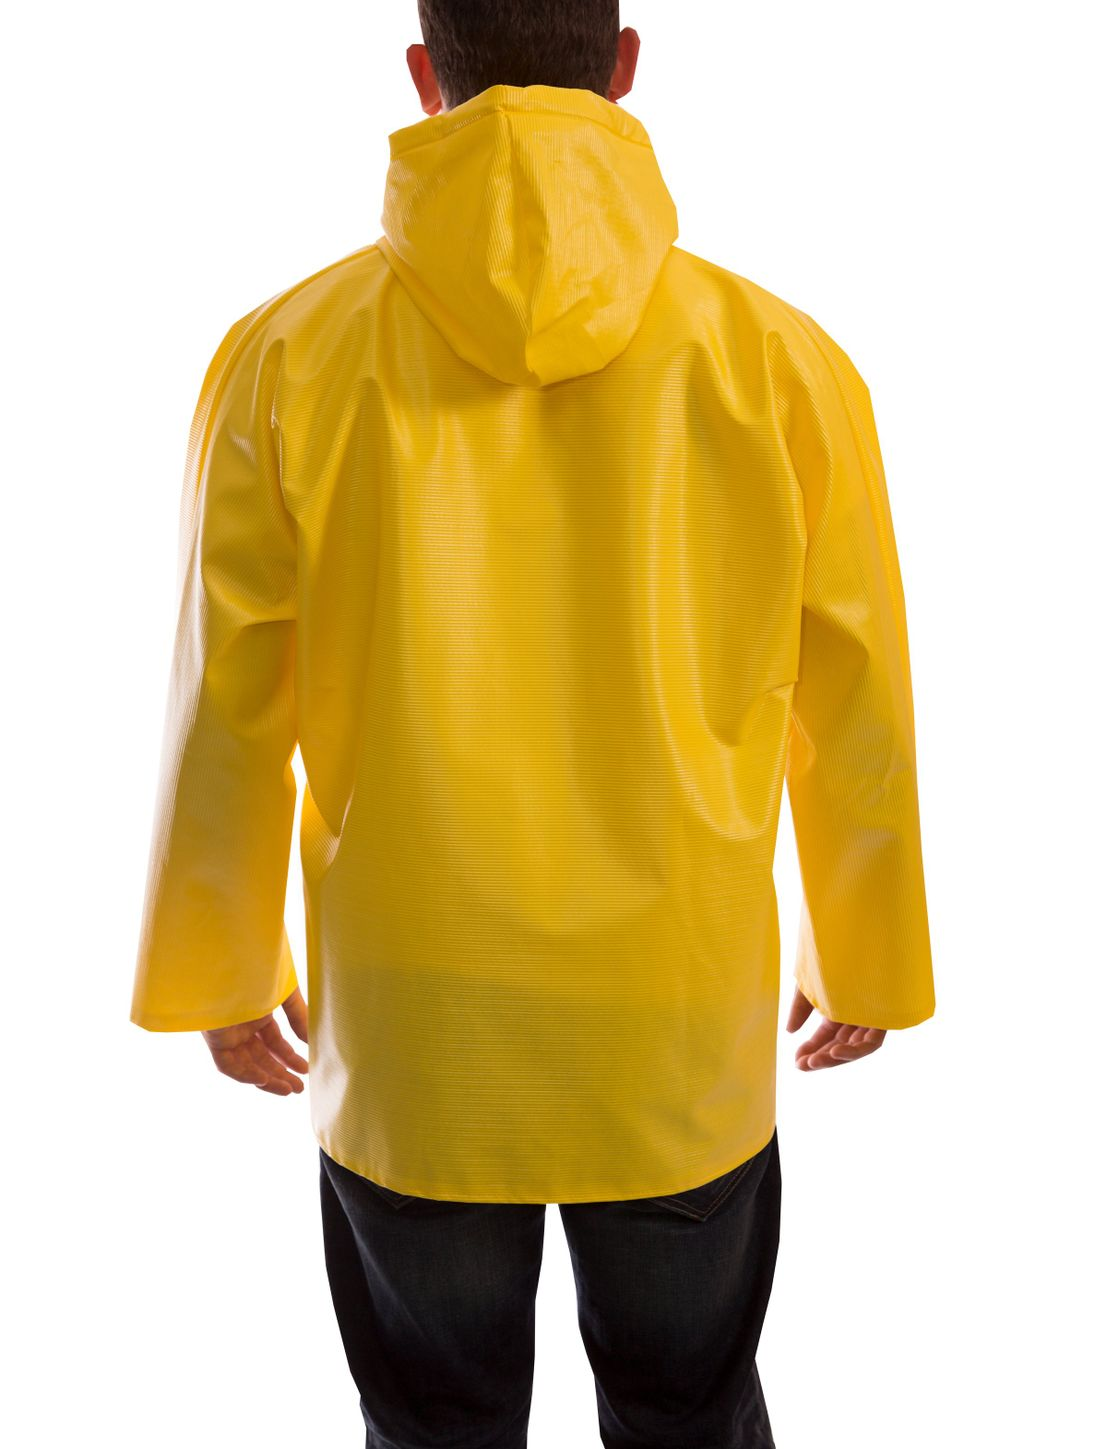 tingley-j31107-webdri-chemical-resistant-jacket-pvc-coated-tear-resistant-with-attached-hood-back.jpg